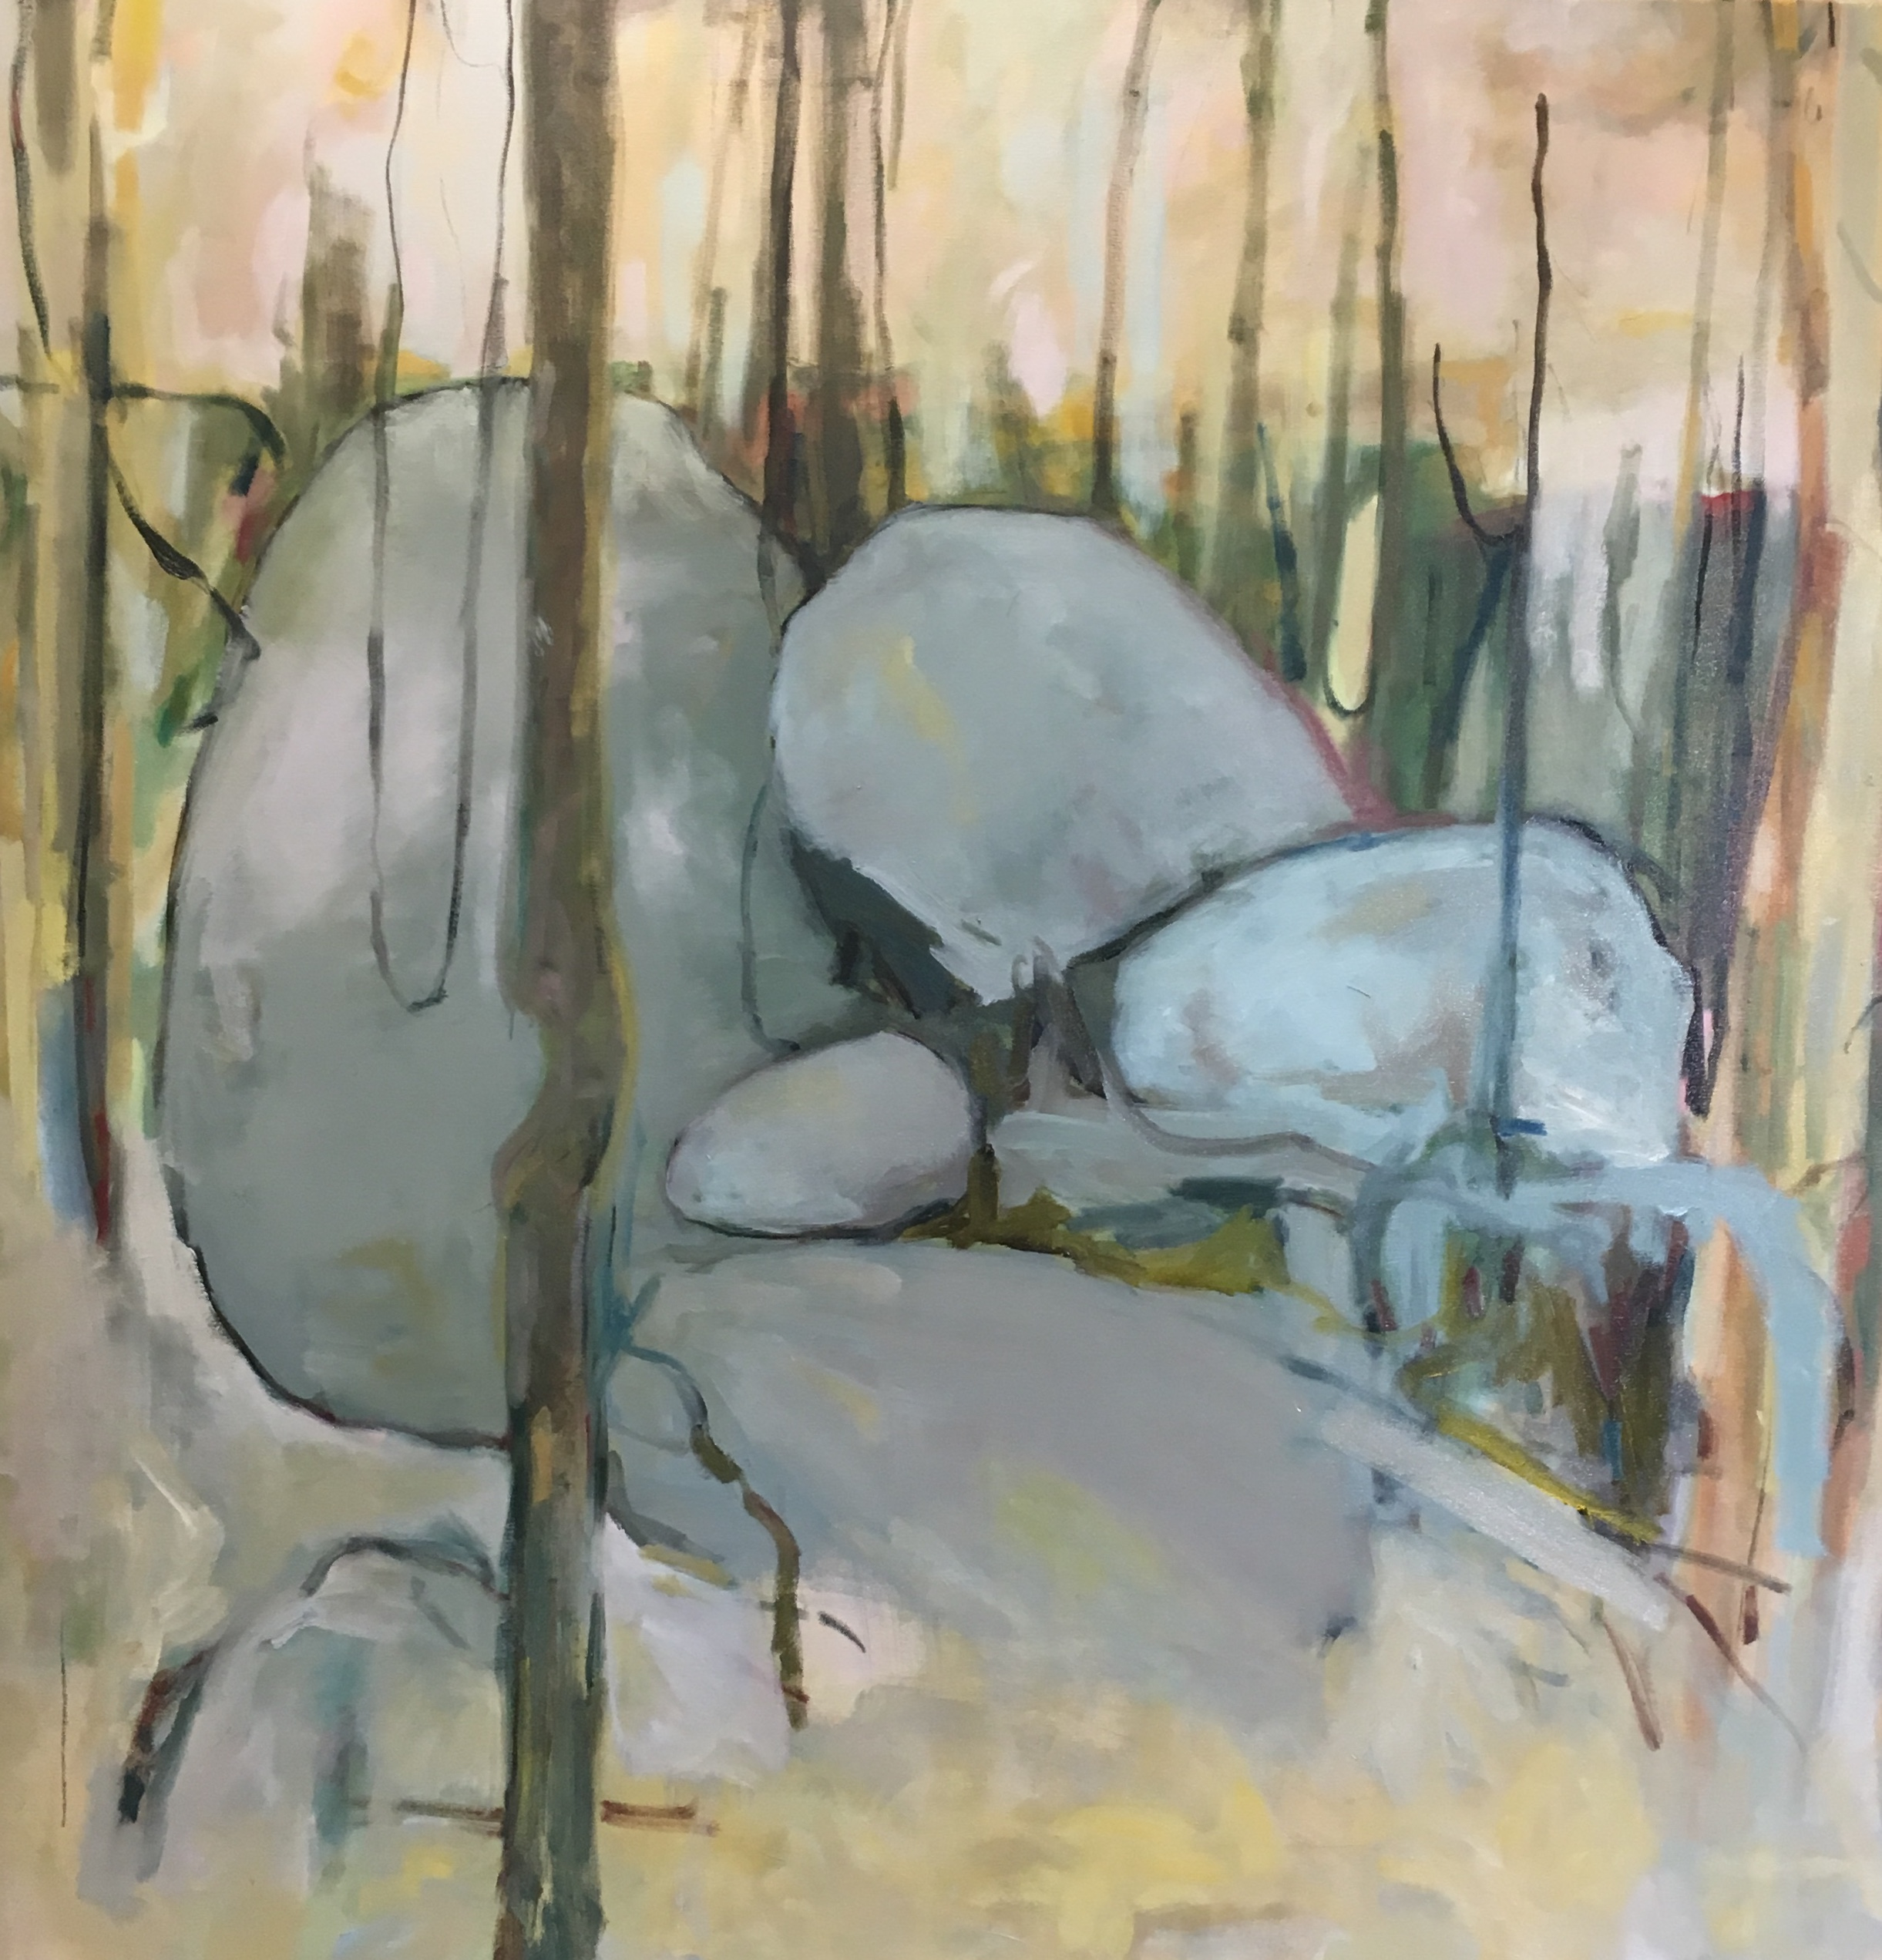 Mundaring Rocks 2018, oil on canvas 120 x 120 2018 (enquiries contact the artist)